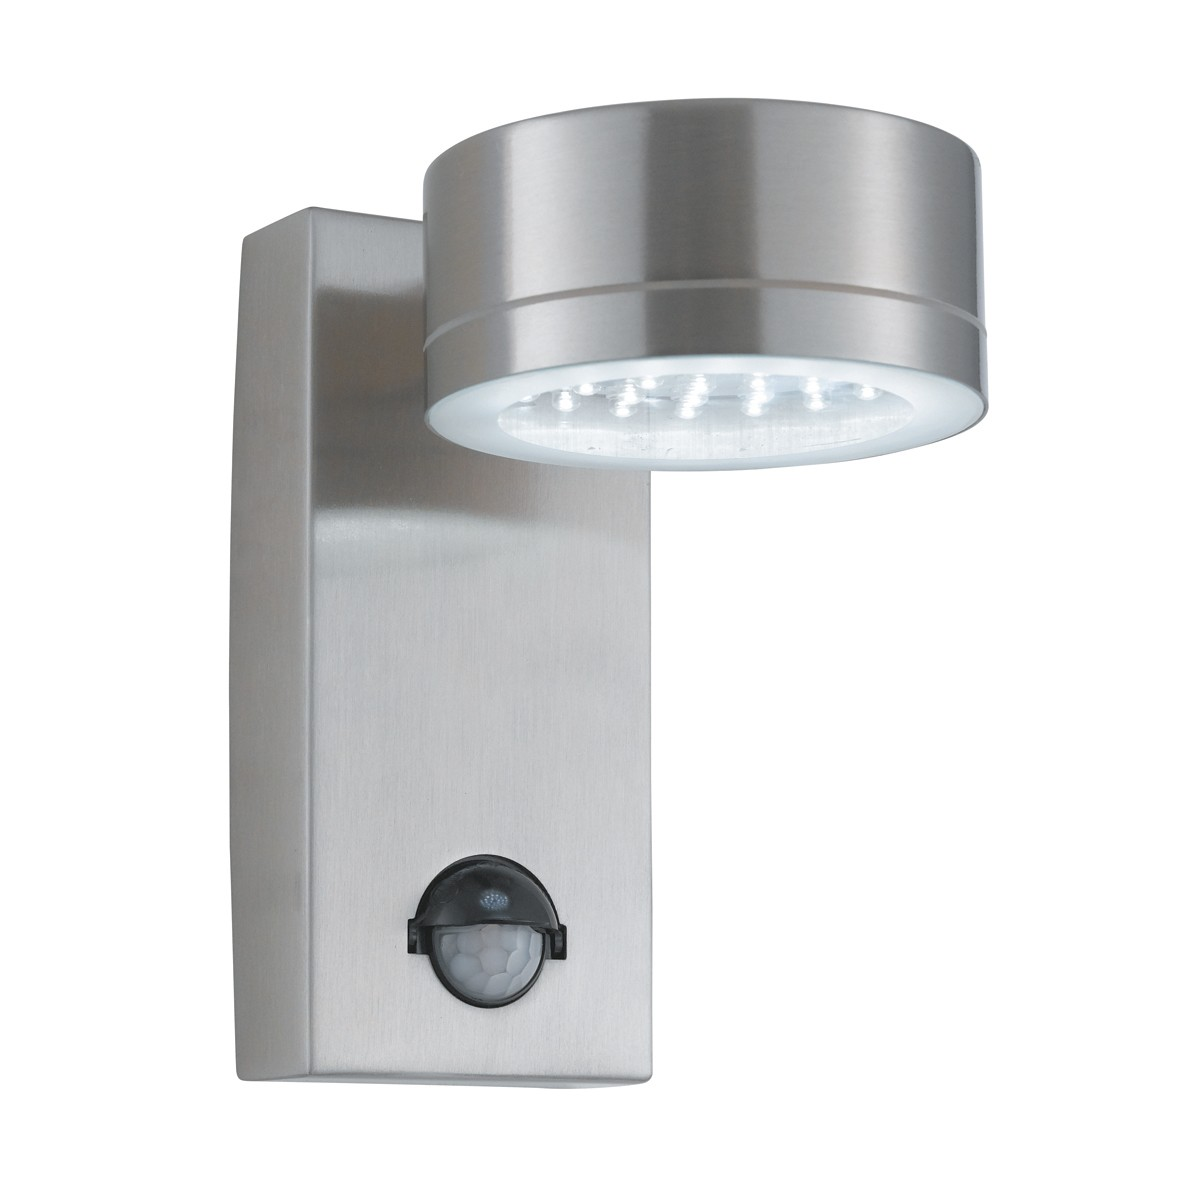 Motion Detector Lights Outdoor Stainless Steel Ip44 36 Led Outdoor Wall Light With Motion Sensor